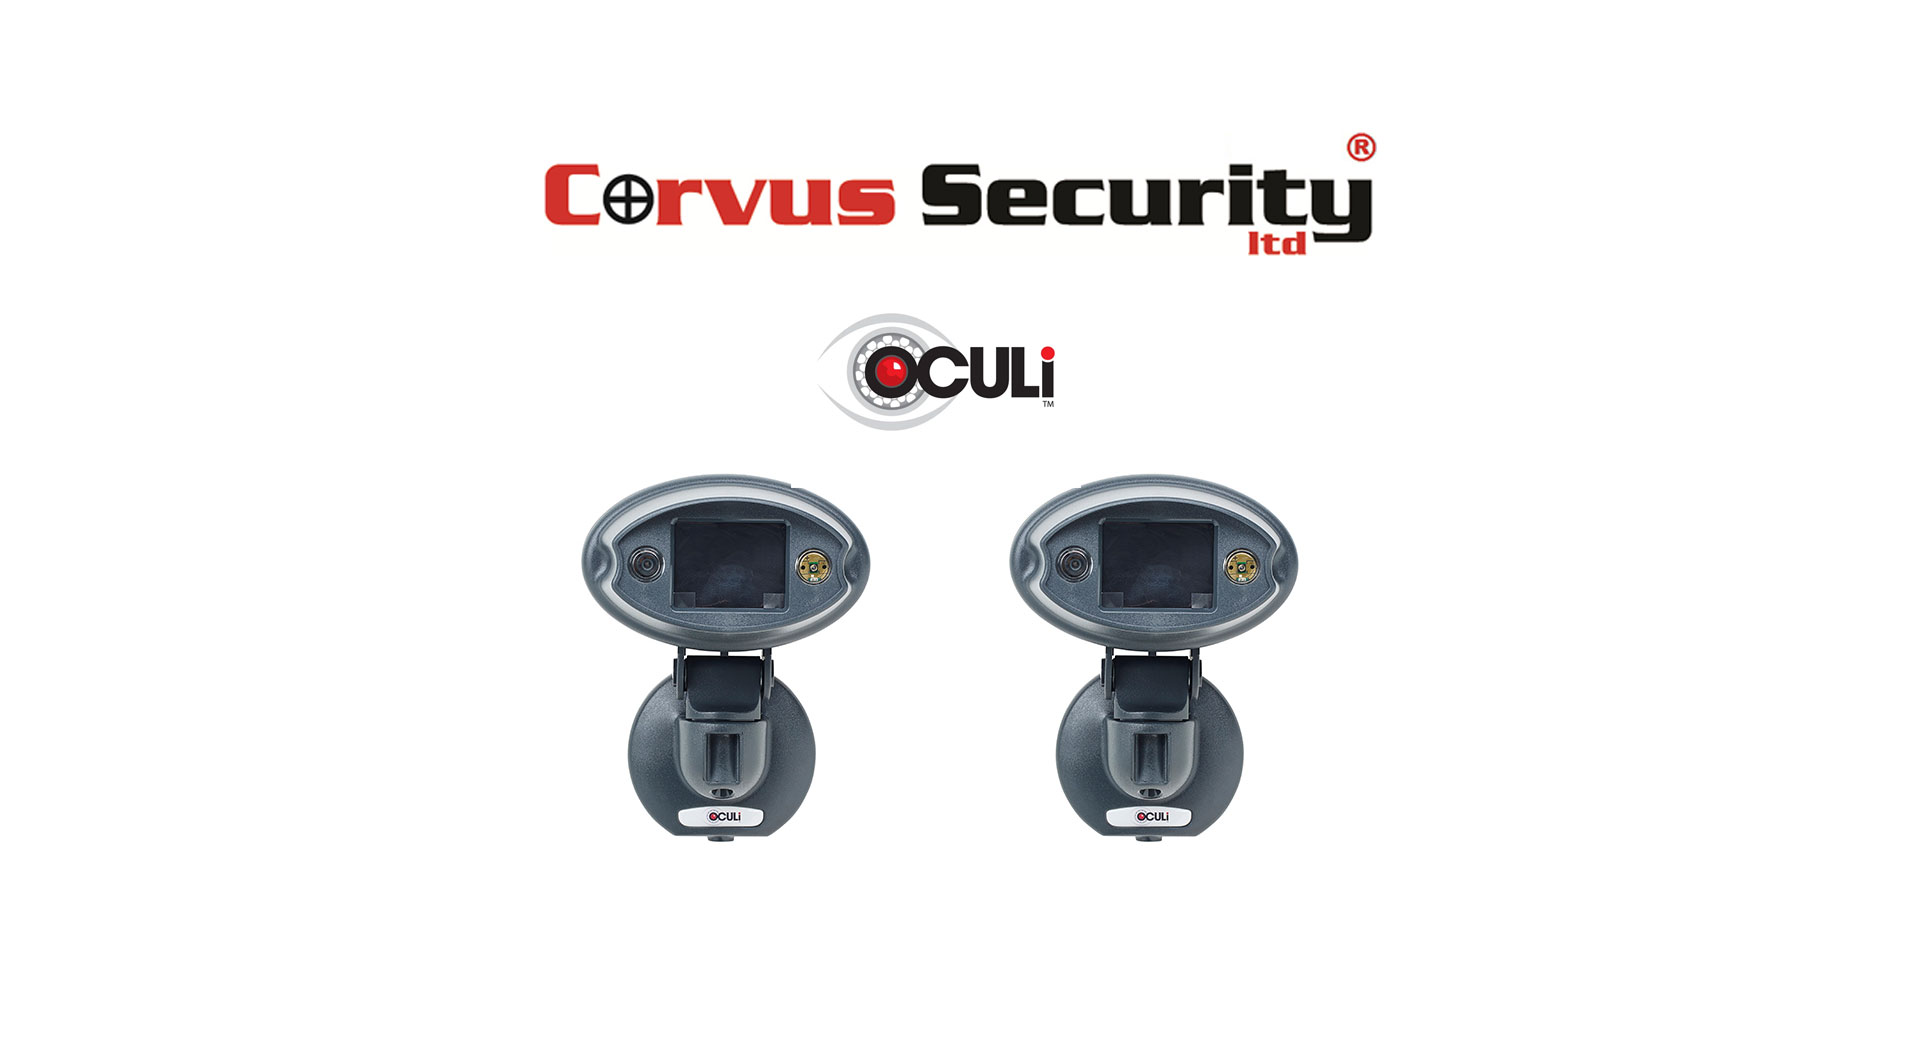 North Wales security specialist adds Oculi CCTV to existing portfolio of security services